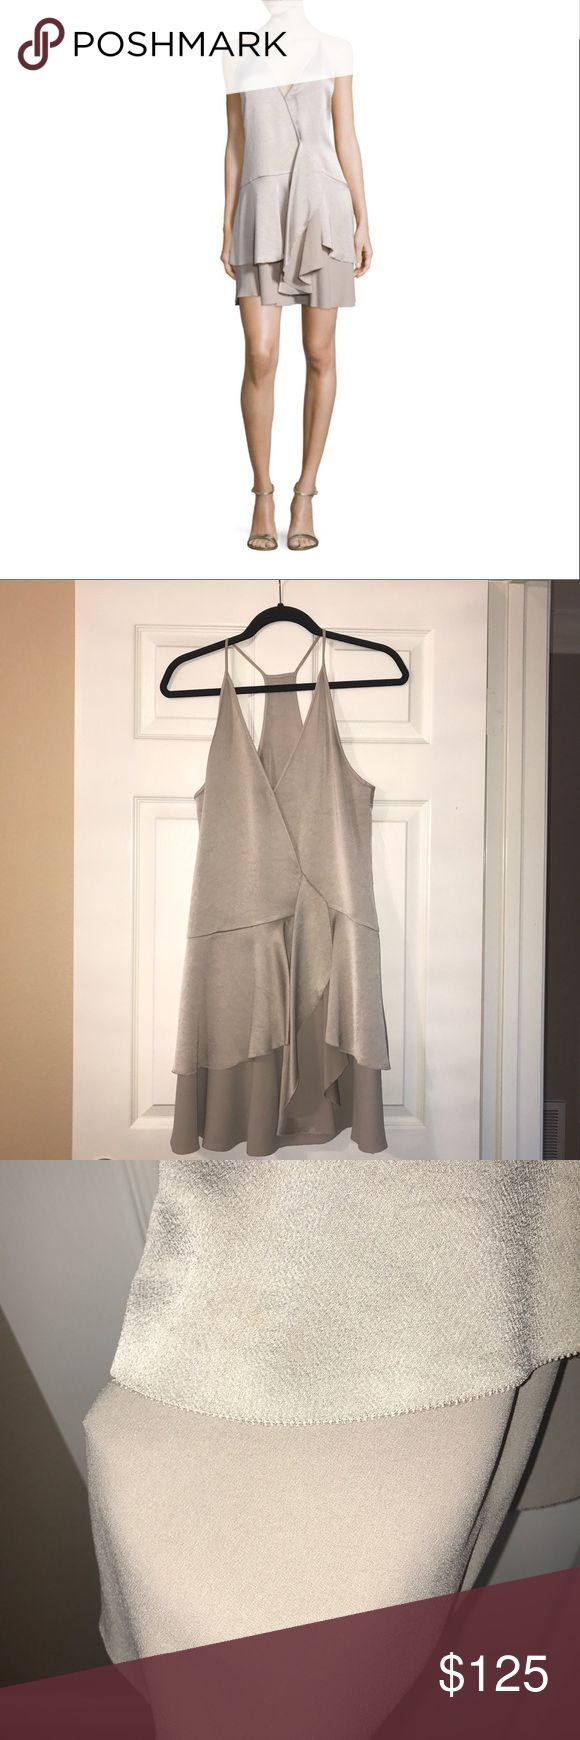 Halston Heritage Stone Wrap Layered Dress Size S NEVER WORN! BRAND NEW! No tags, but is in perfect, retail condition no defects, damages, stains or signs of wear. runs way too big, fits like a M or even a L (thats why its listed as M even though it's a S, listing it as a S would be misleading for the buyer) Im 5'2, 120 pounds, 32D breasts & this was way too big & way too long for me only the breasts were a little snug, I would recommend for people with C cup or smaller. NO TRADES! NO…